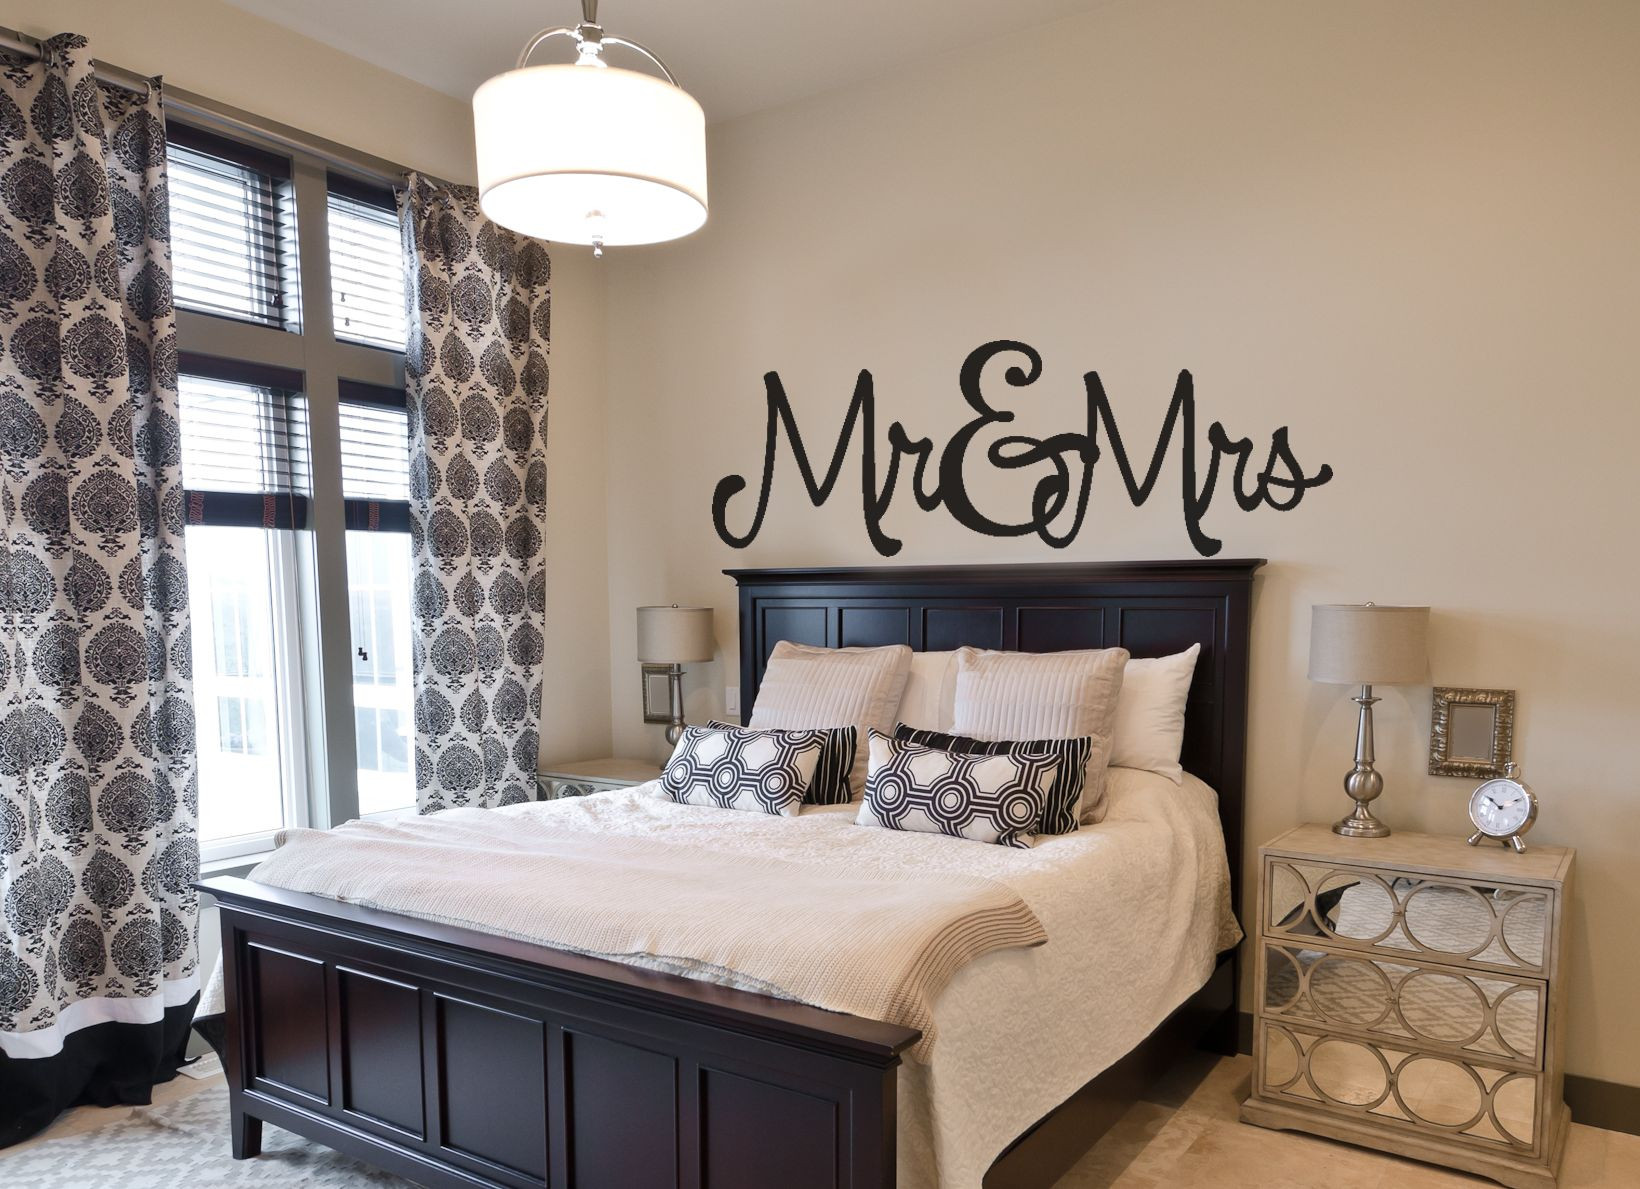 Best ideas about Wall Art For Bedroom . Save or Pin Bedroom Wall Decal Mr & Mrs Now.